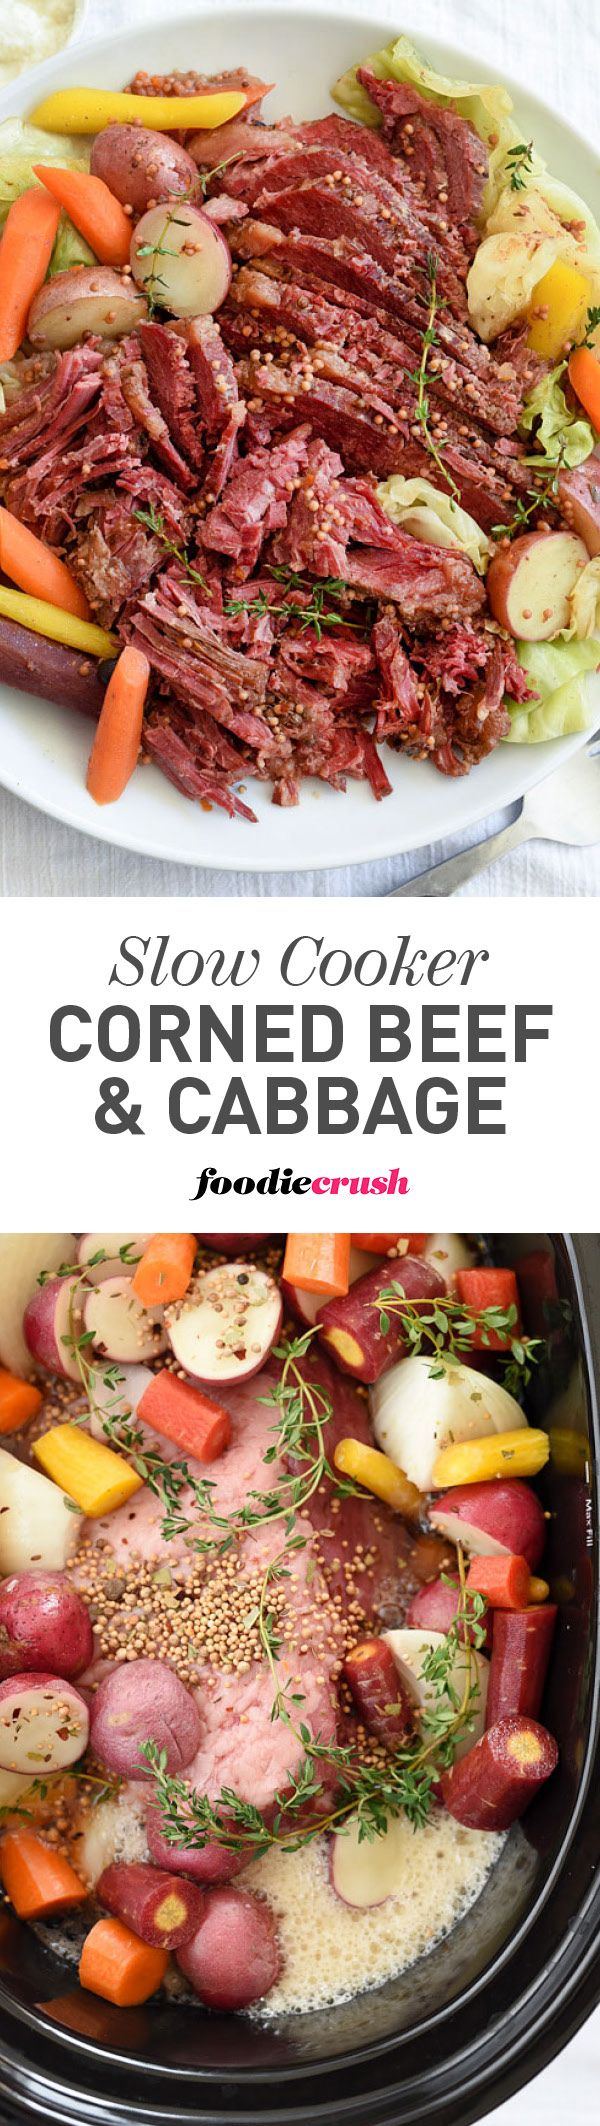 This slow cooker corned beef creates tender, fall-apart chunks of beef thanks to…